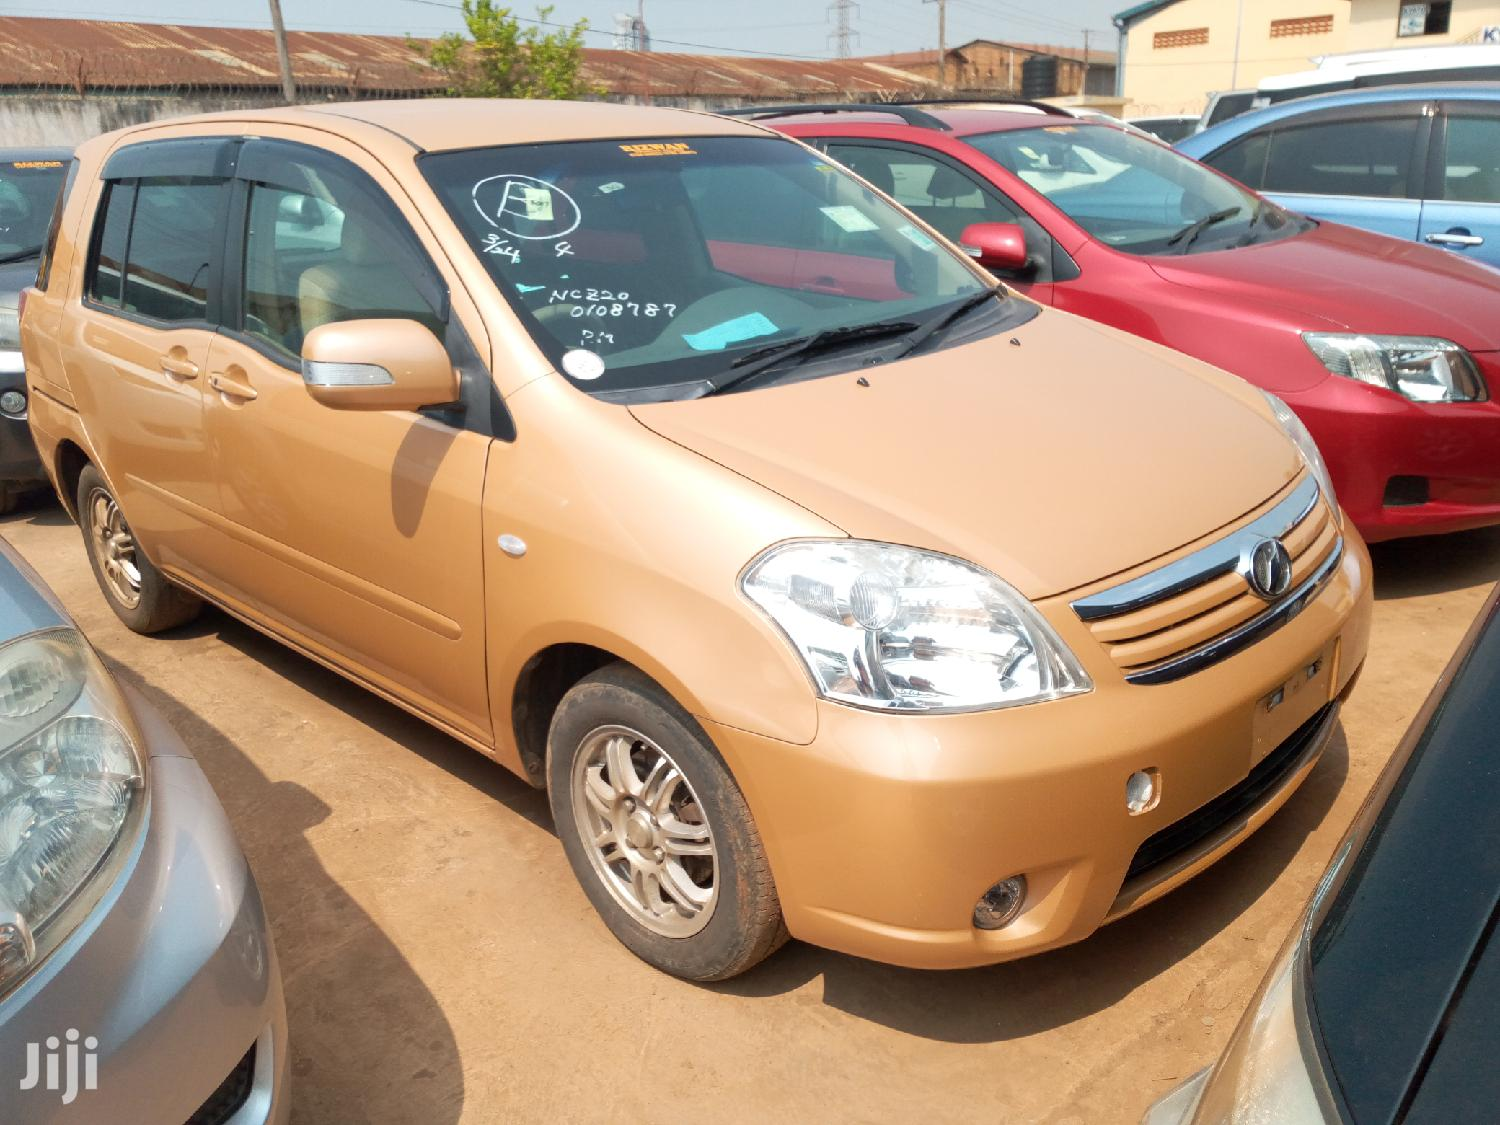 Archive: New Toyota Raum 2007